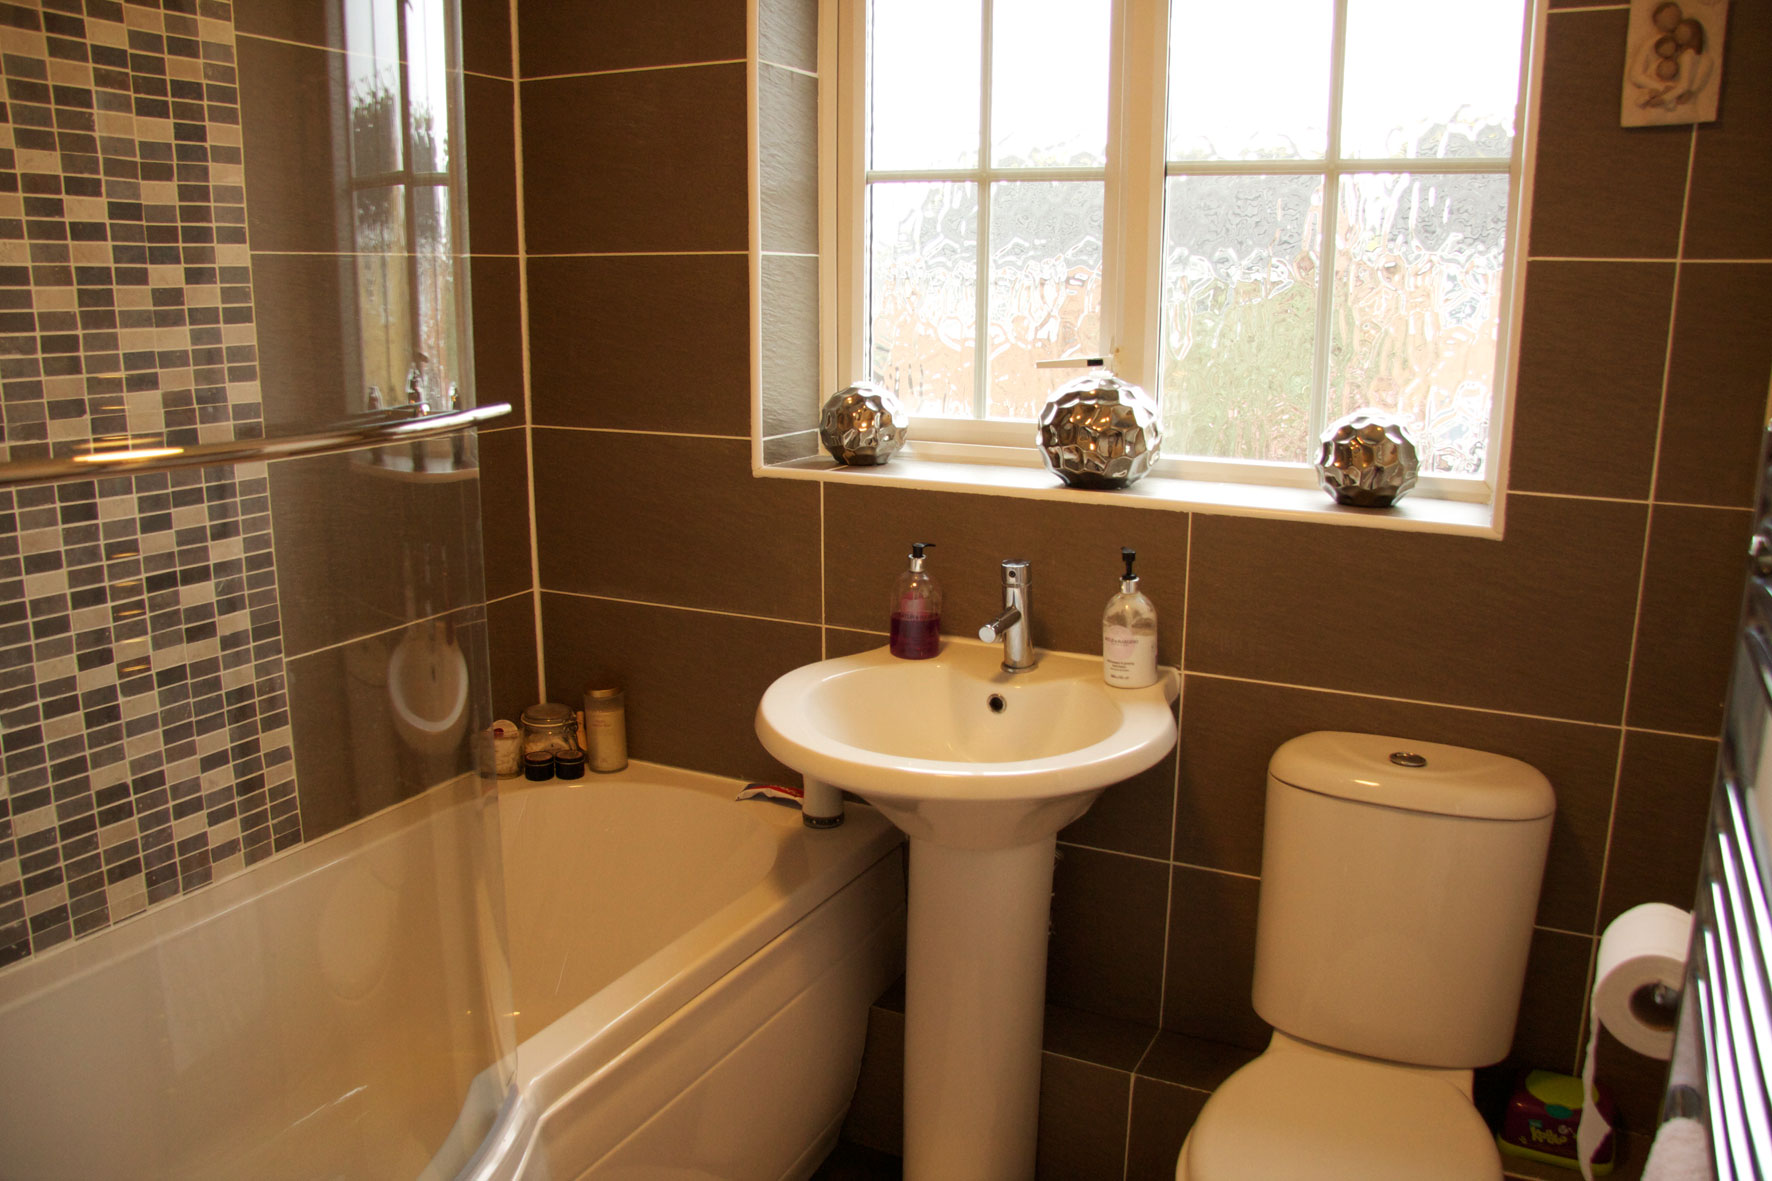 Work ac homeworks northampton based home improvements for New washroom designs